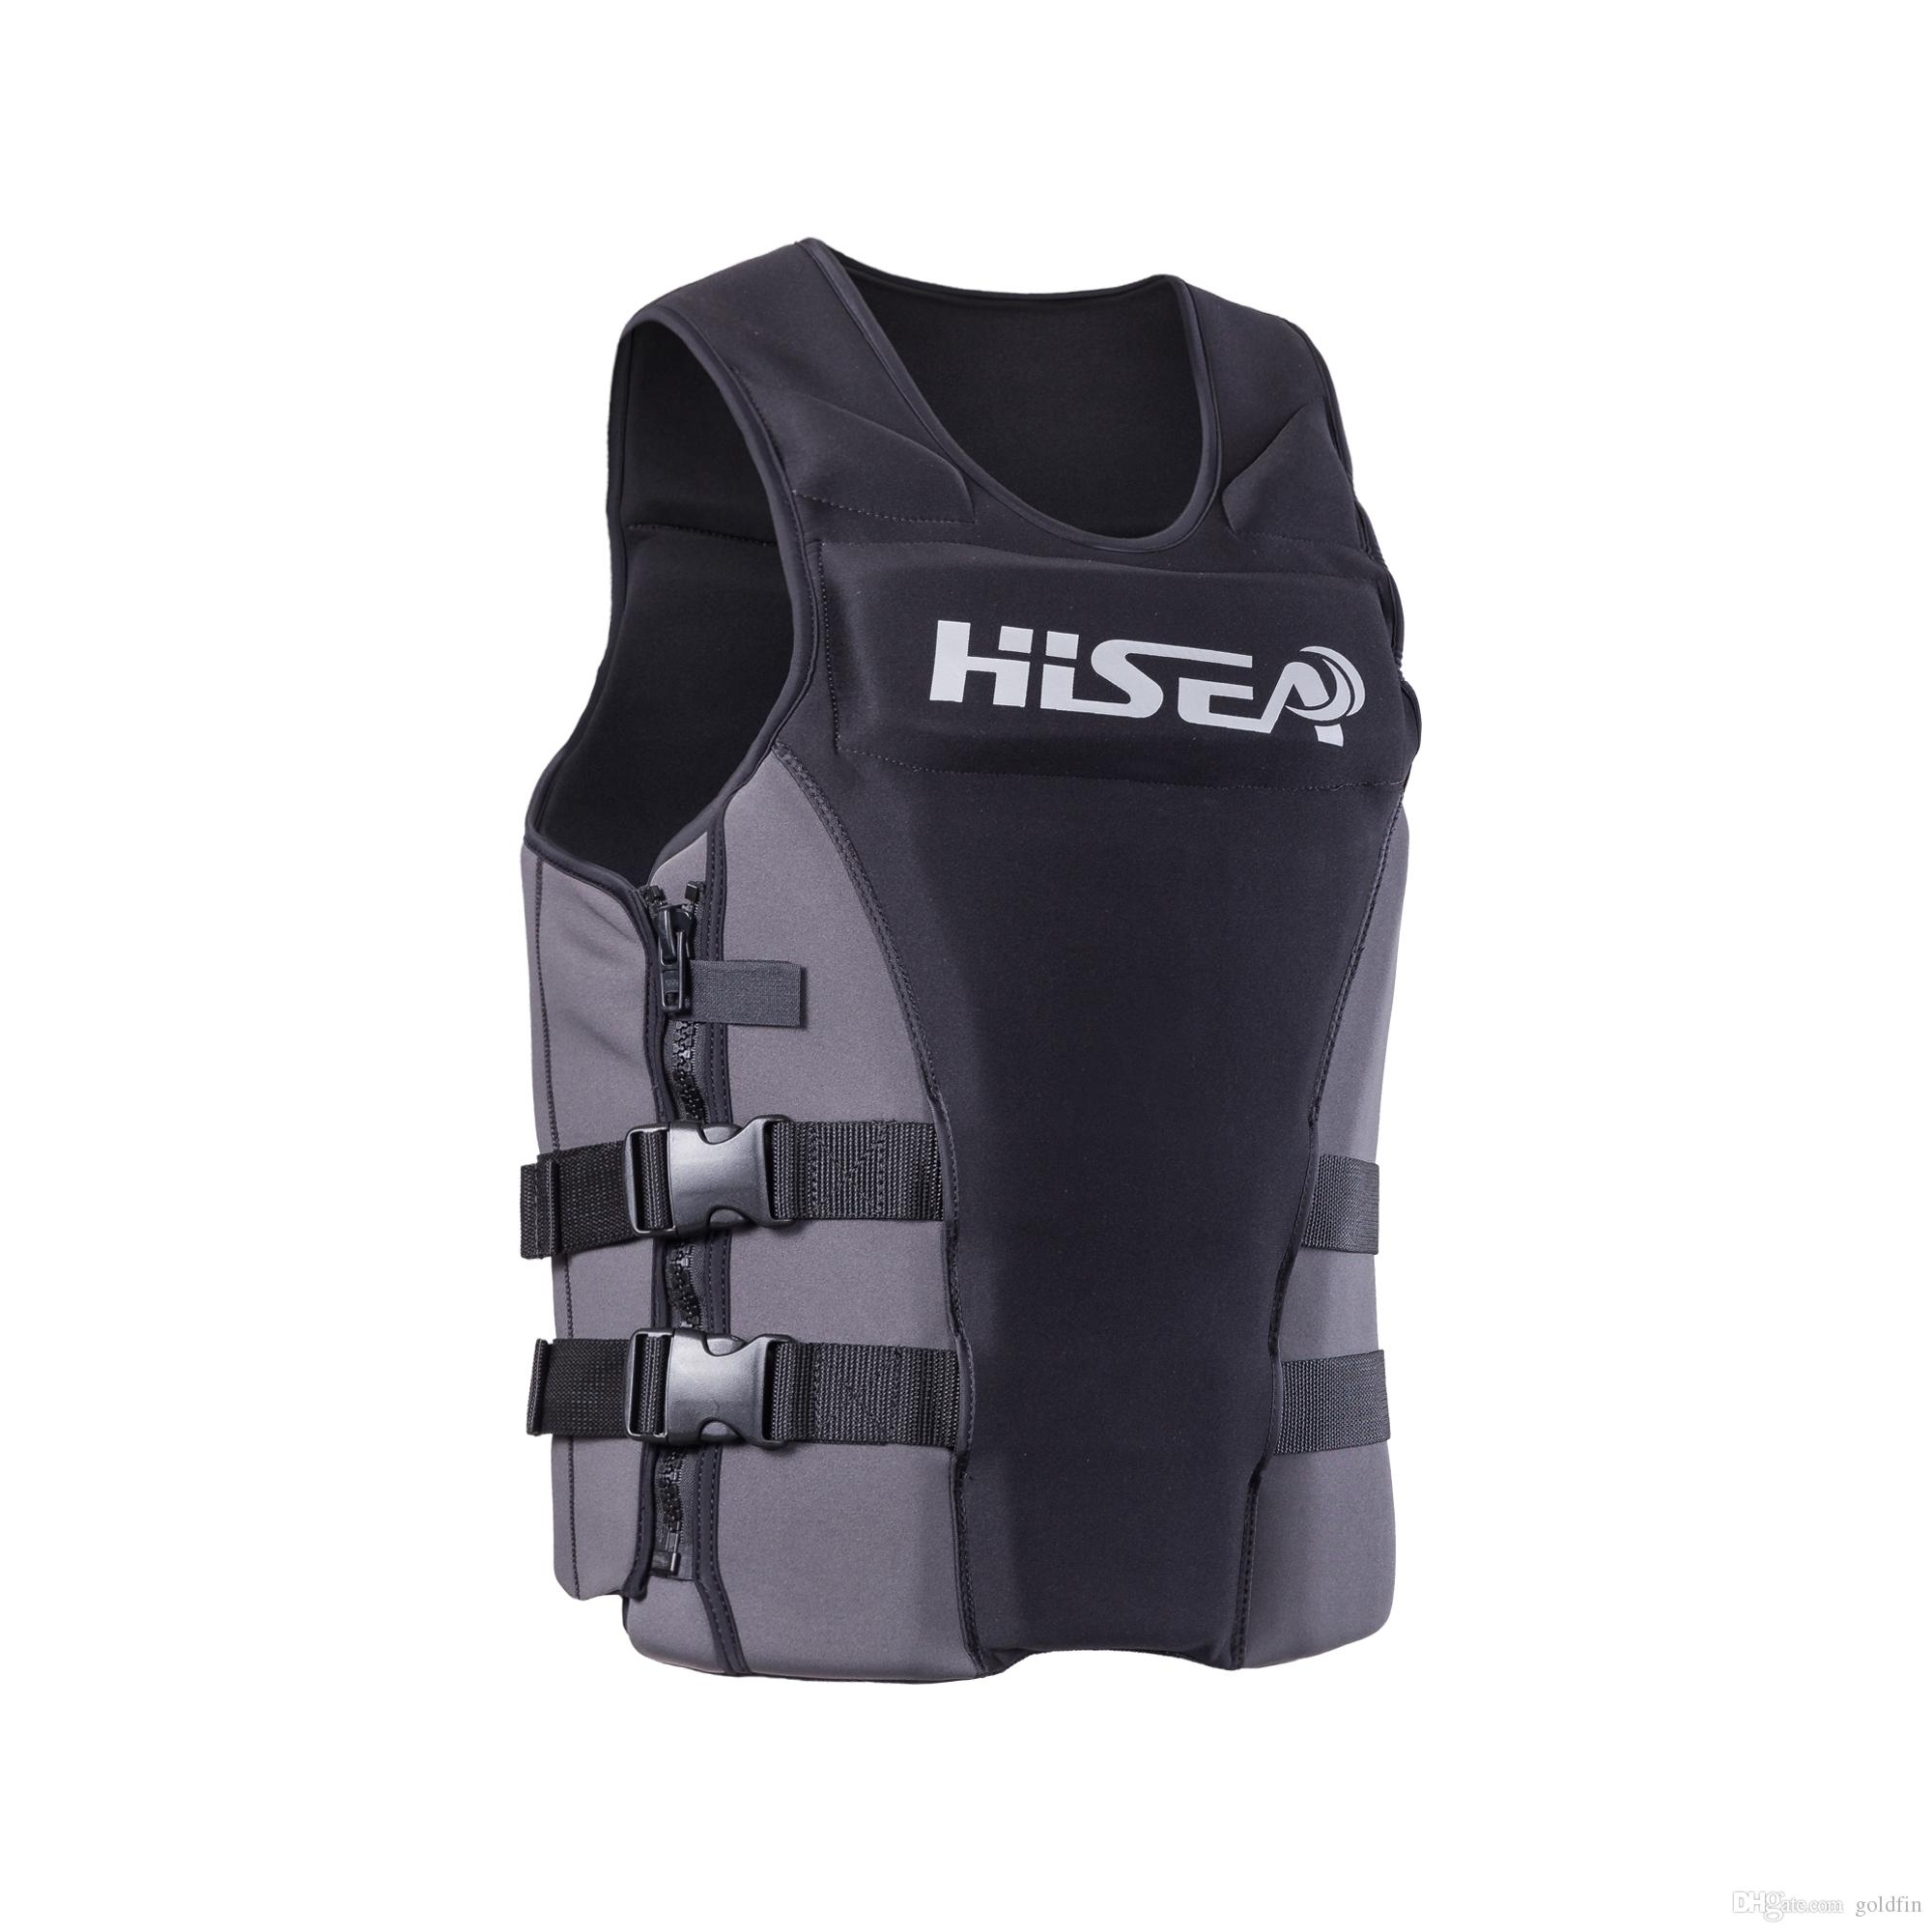 2019 HISEA L002 Good Quality Boys And Mens Neoprene Life Jacket Surfing  Life Vest Buoyancy Floating Drifting Fishing Vest Impack From Goldfin 6e87f4ae2